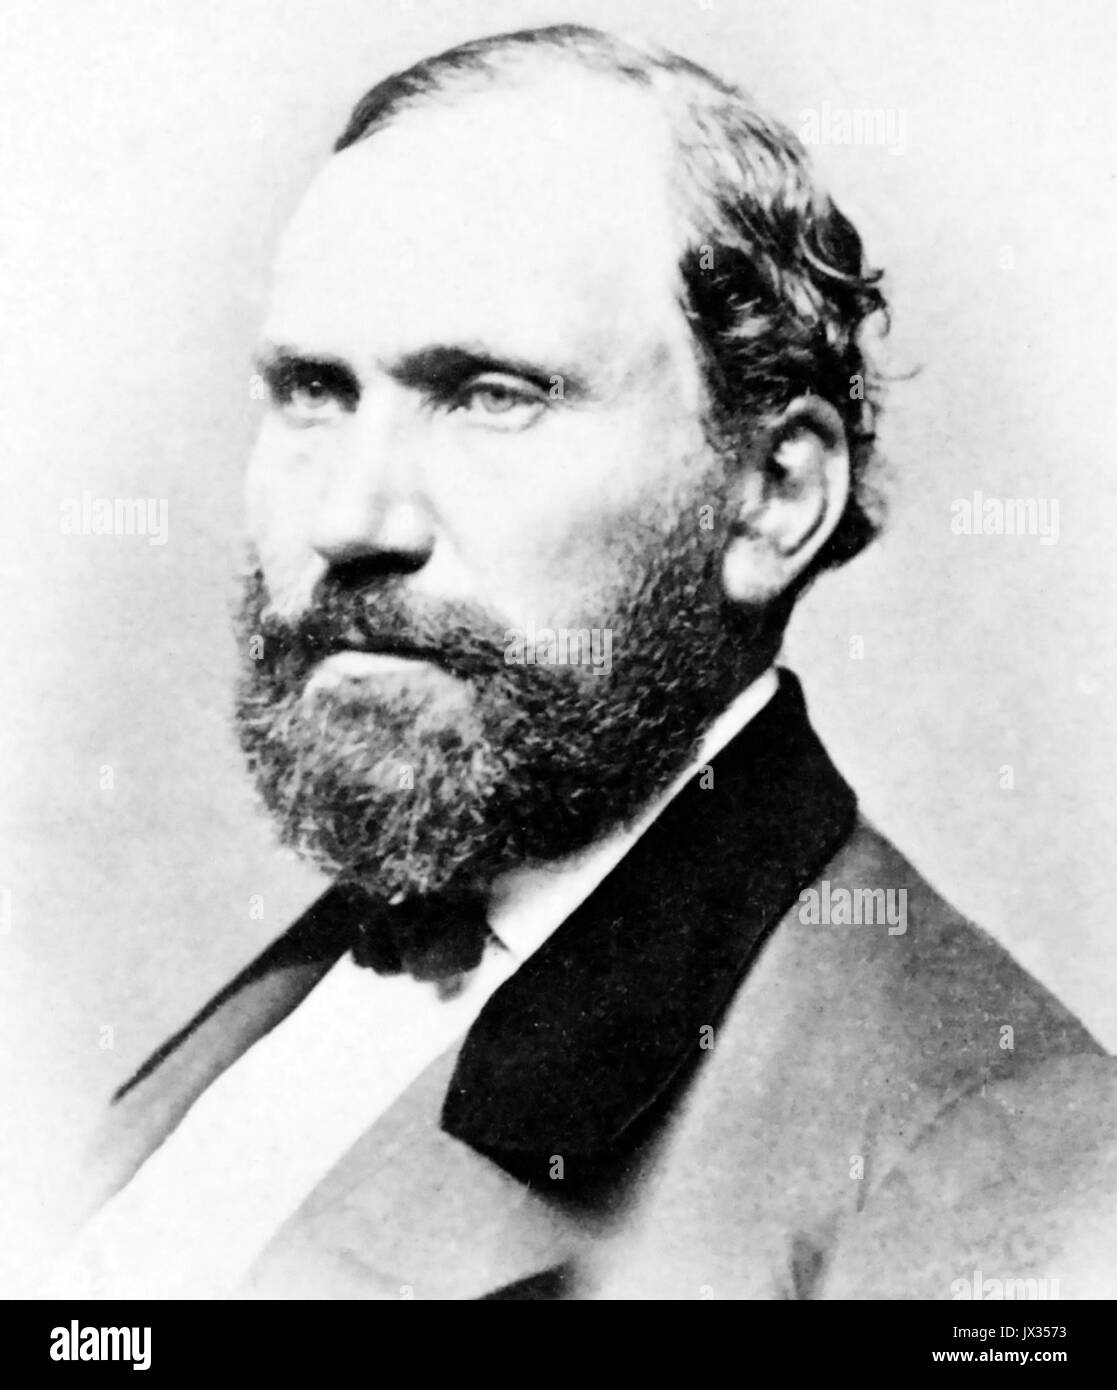 ALLAN PINKERTON (1819-1884)  Scottish American detective and Union spy about 1860 - Stock Image